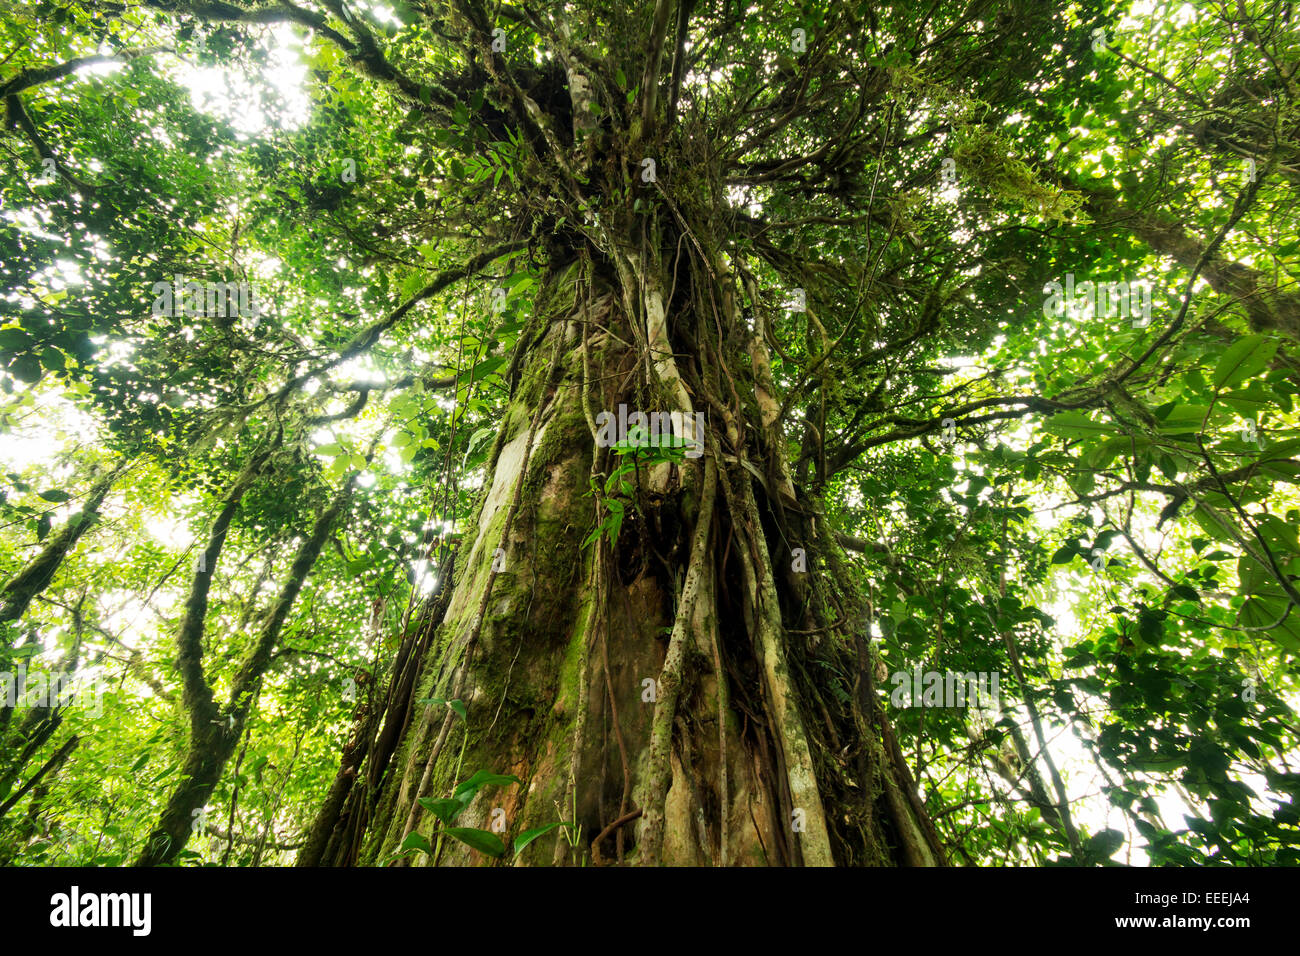 Beautiful big old tree with vines growing on it from the jungles of Costa Rica - Stock Image